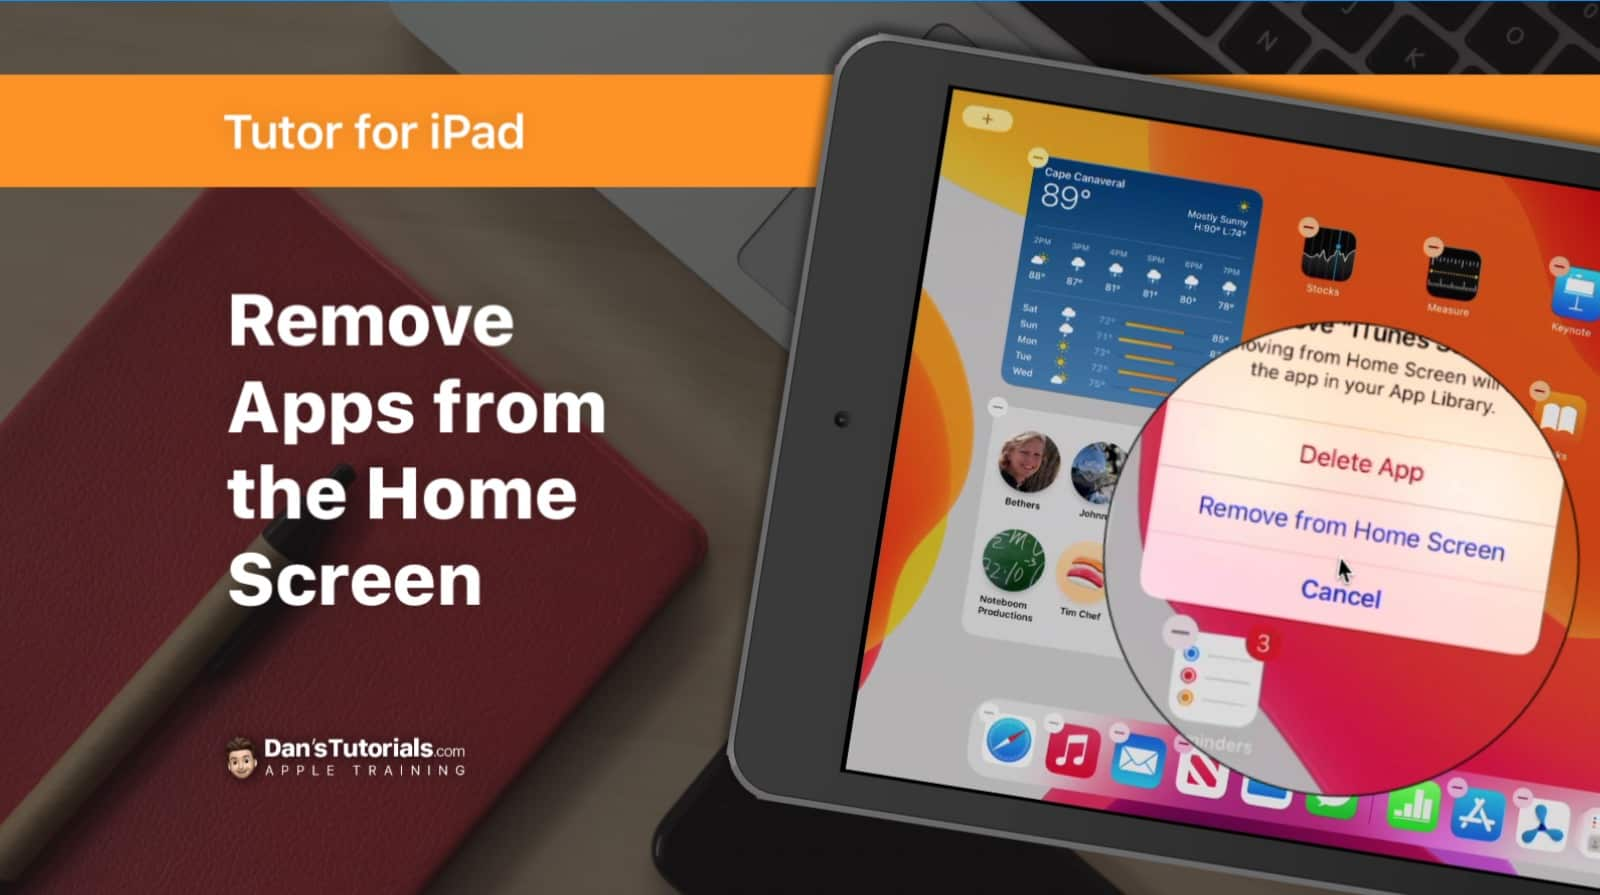 Remove Apps from the Home Screen on the iPad